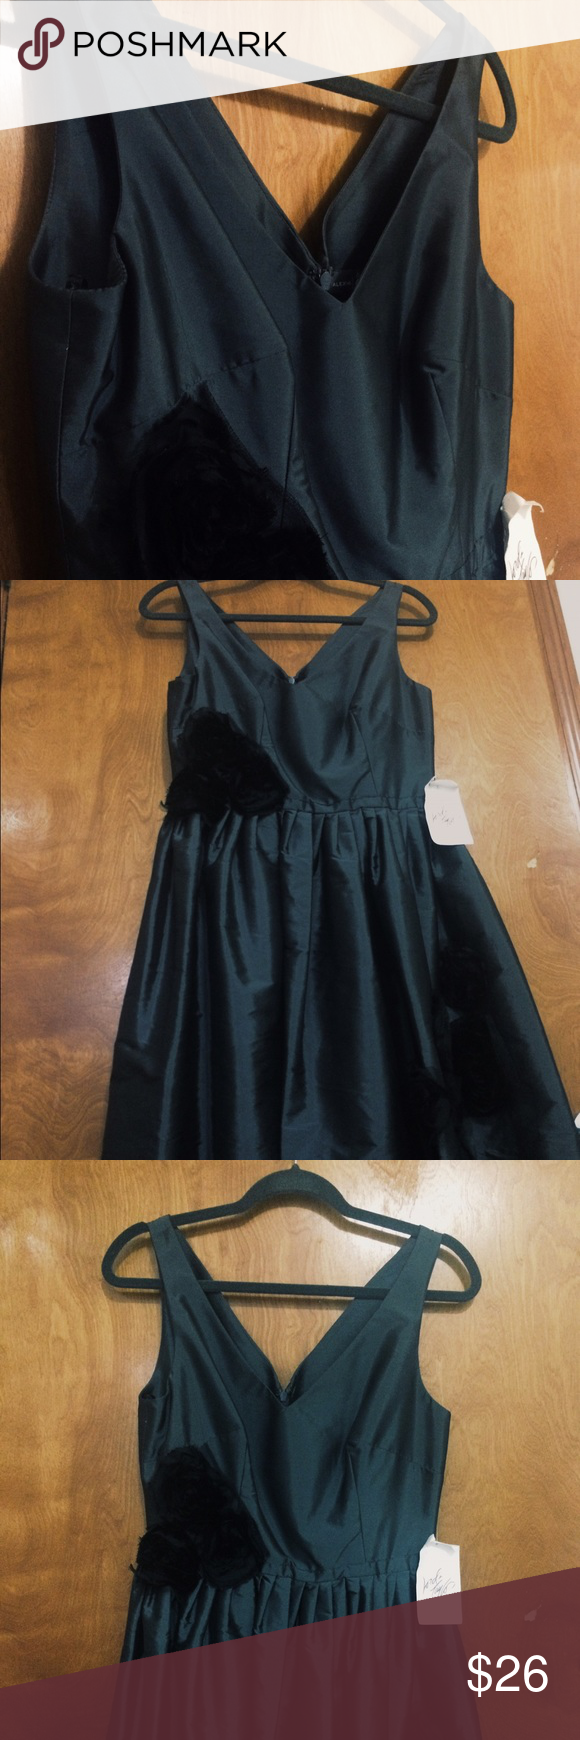 Dress Dark Gray, with black roses Lord & Taylor Dresses Asymmetrical